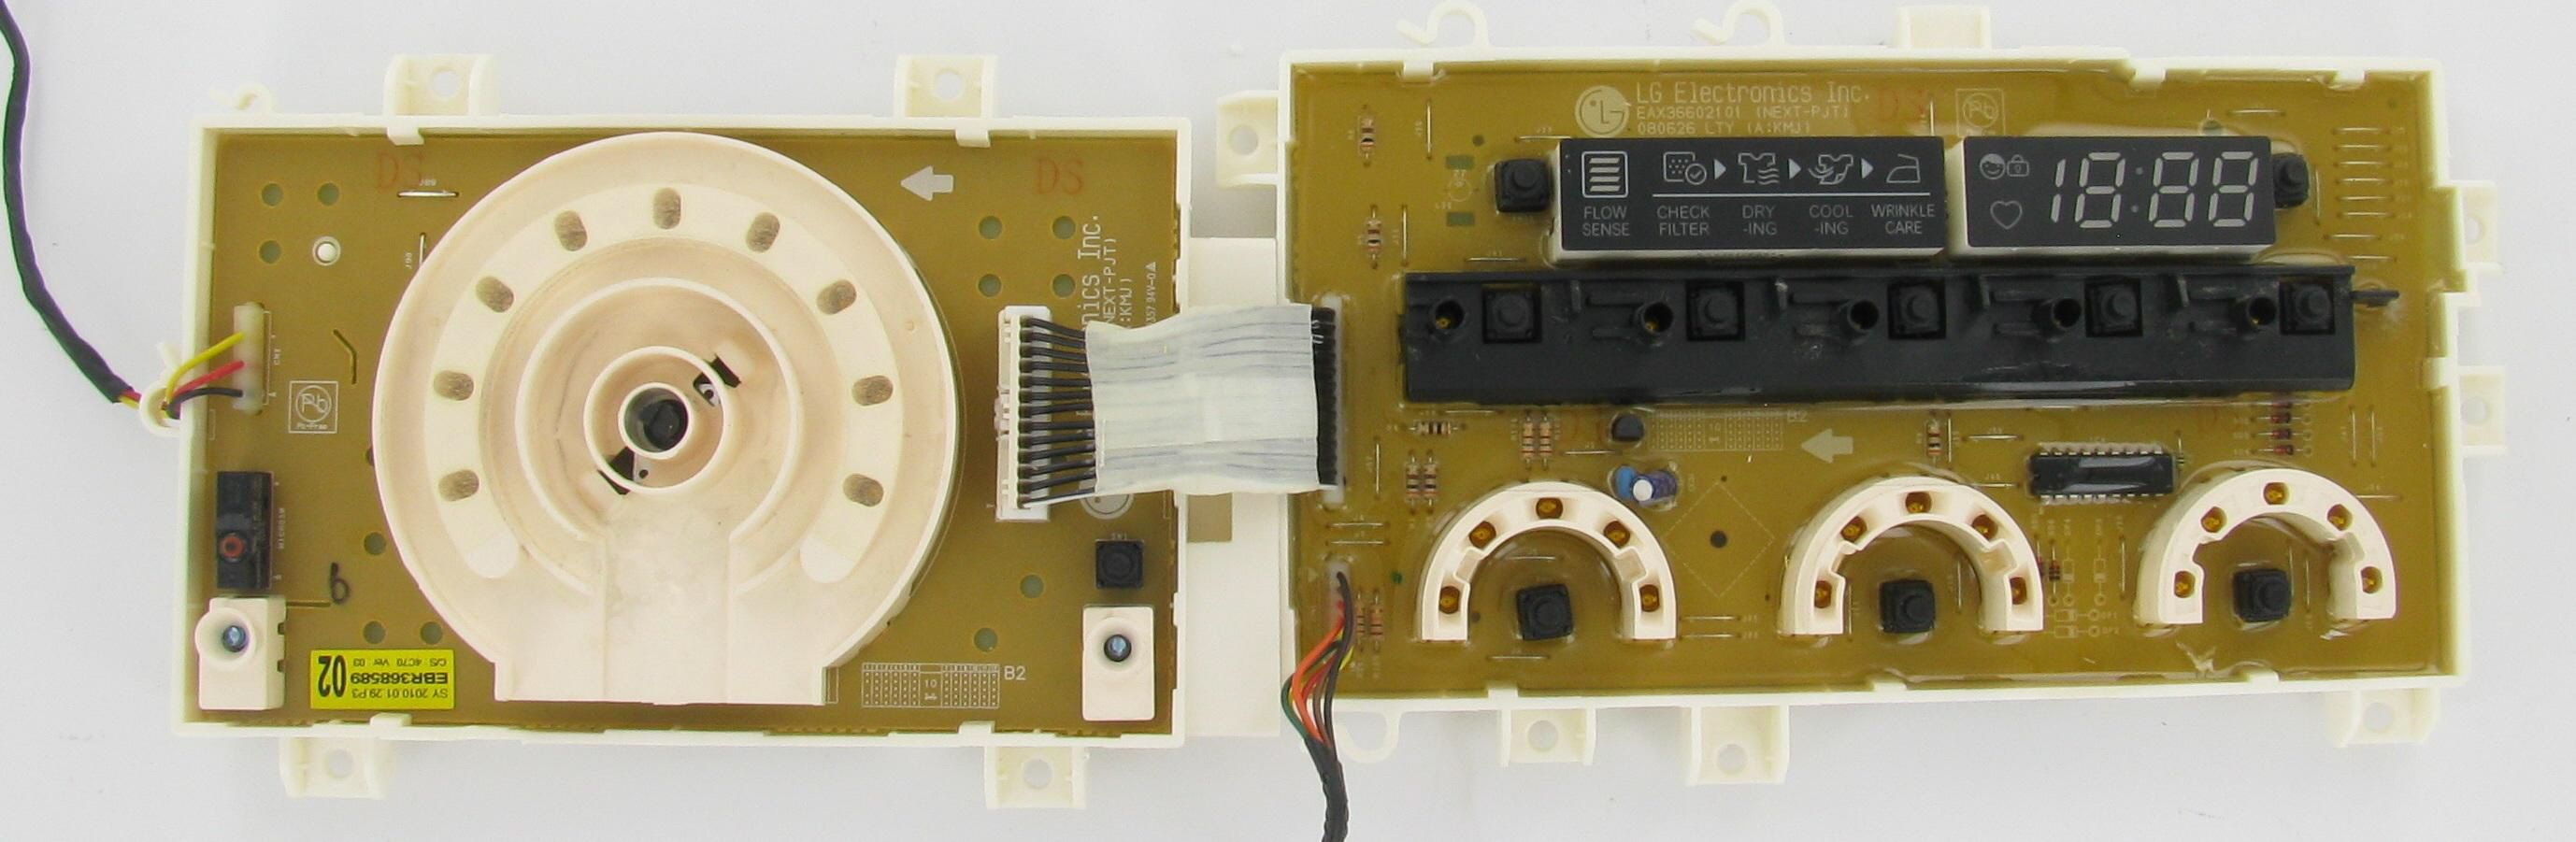 Lg ebr laundry dryer pcb assembly board control boards